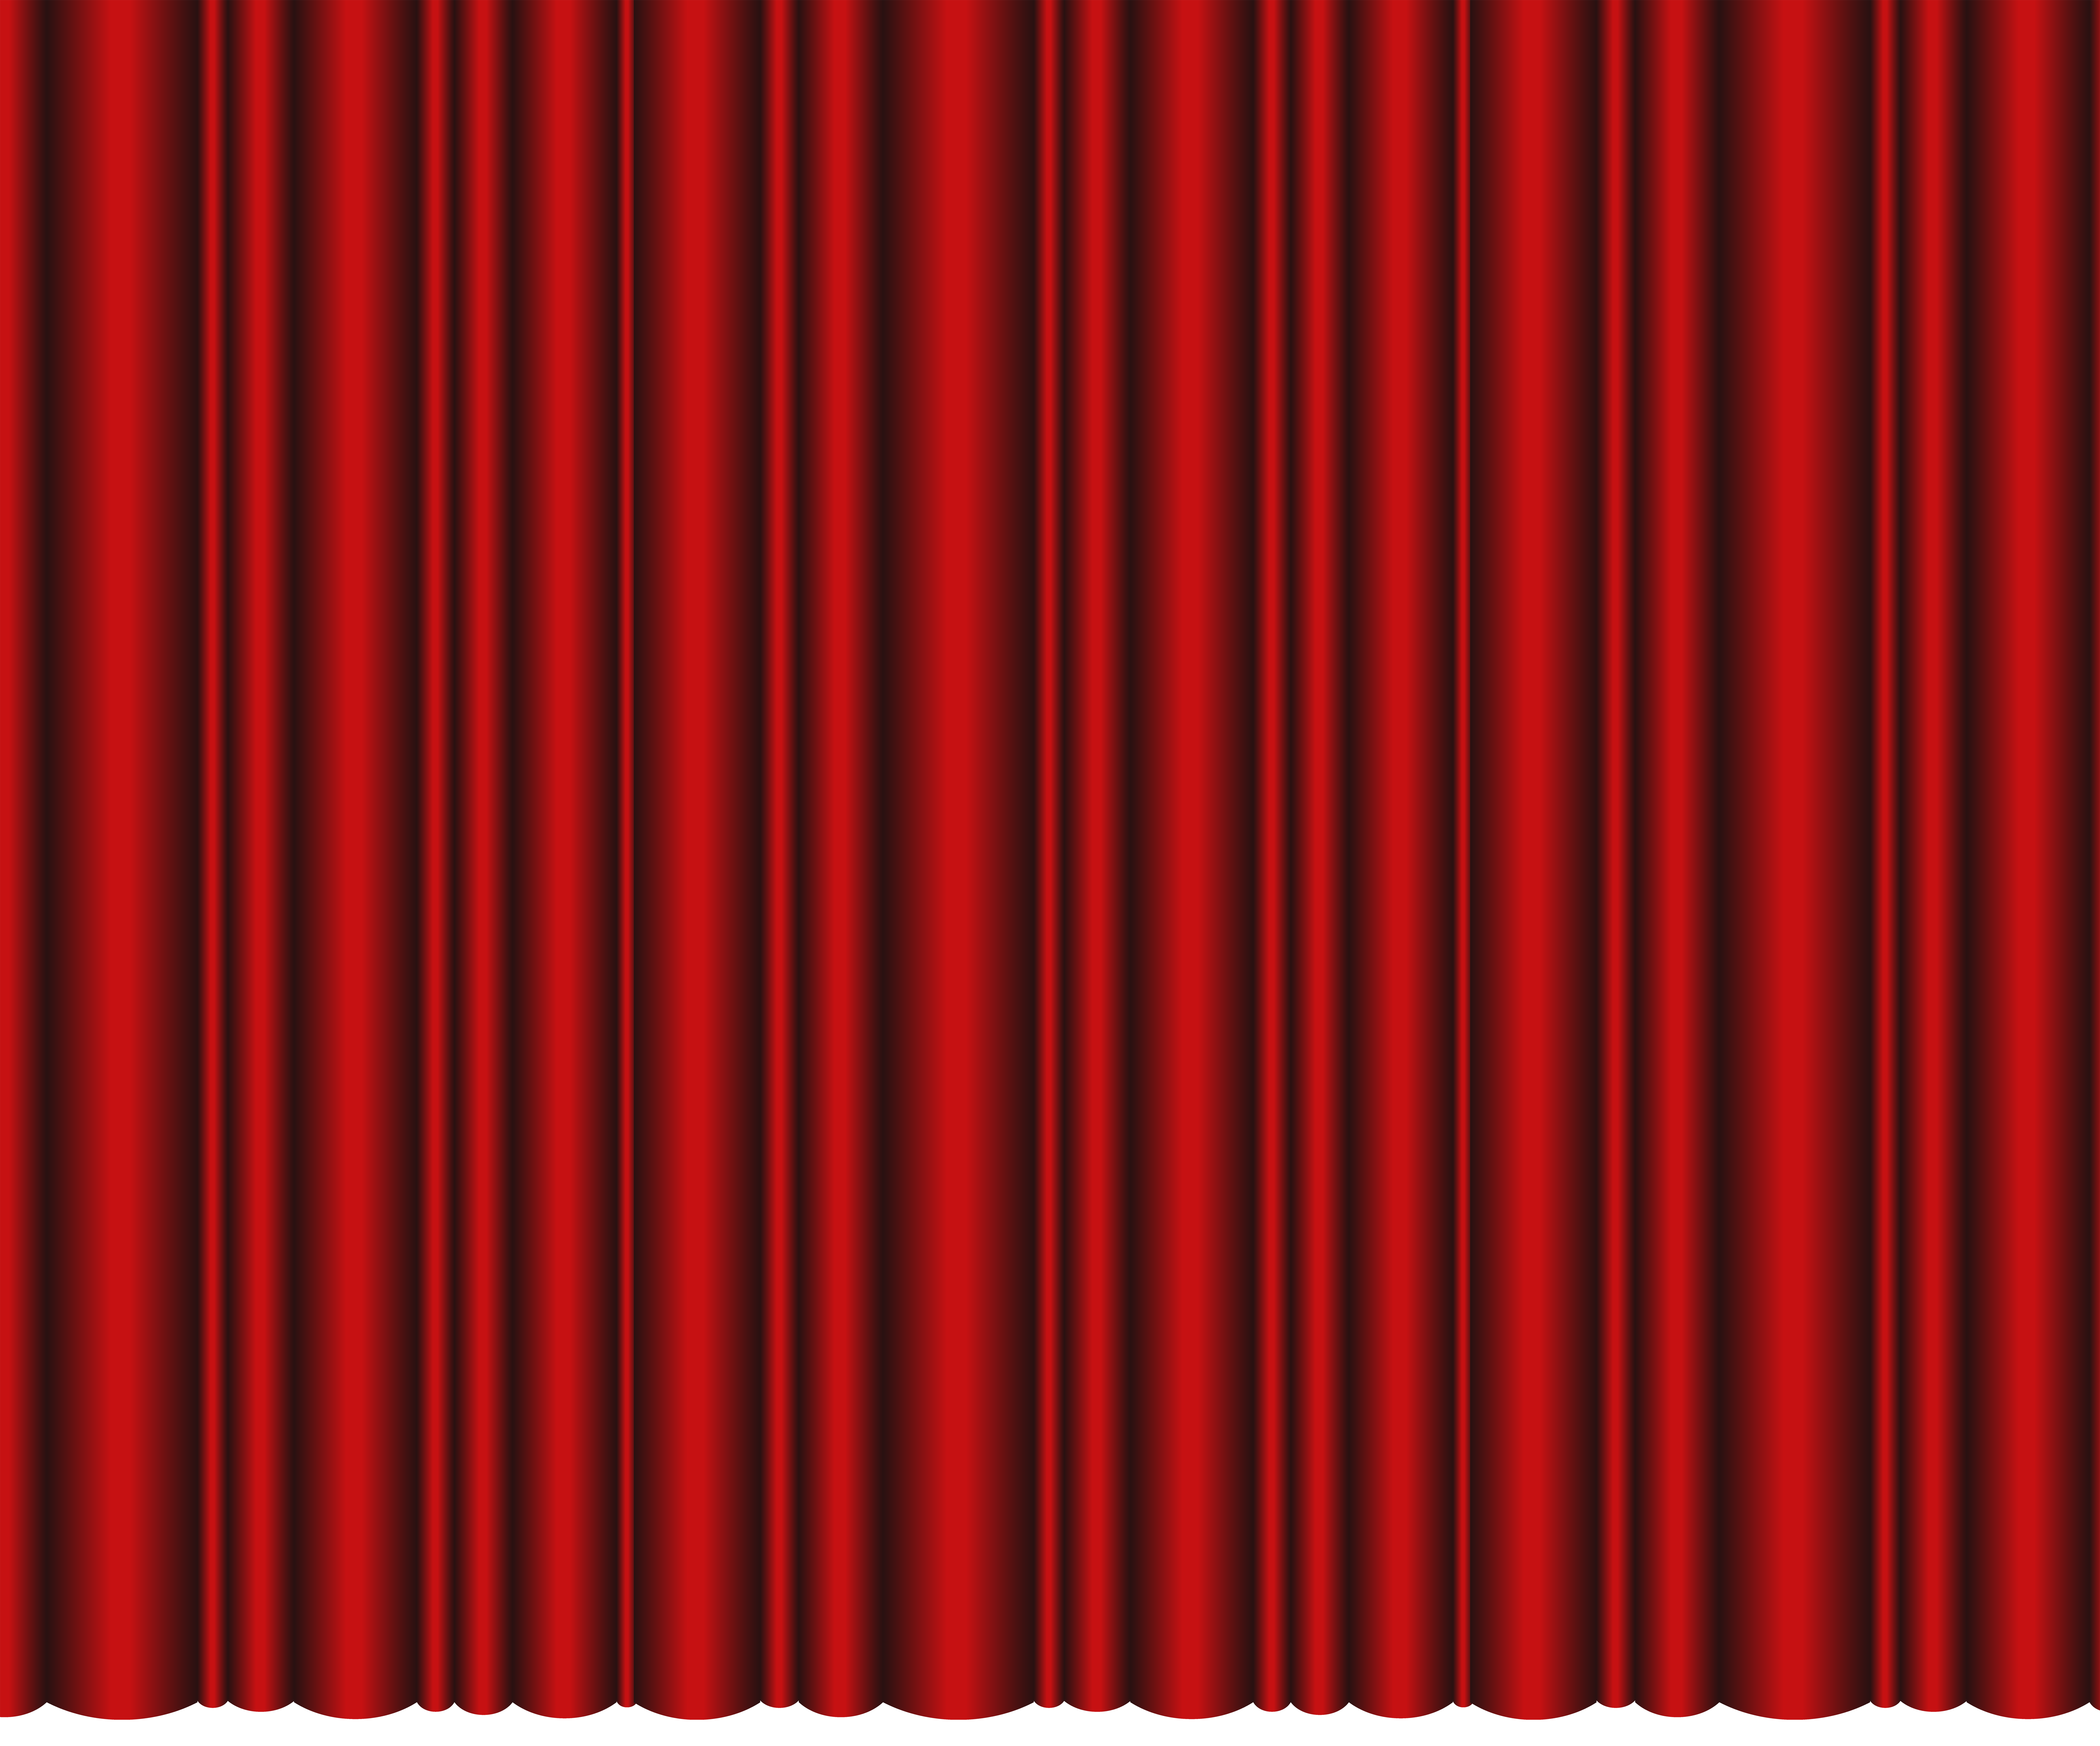 Curtain clipart left. Http gallery yopriceville com